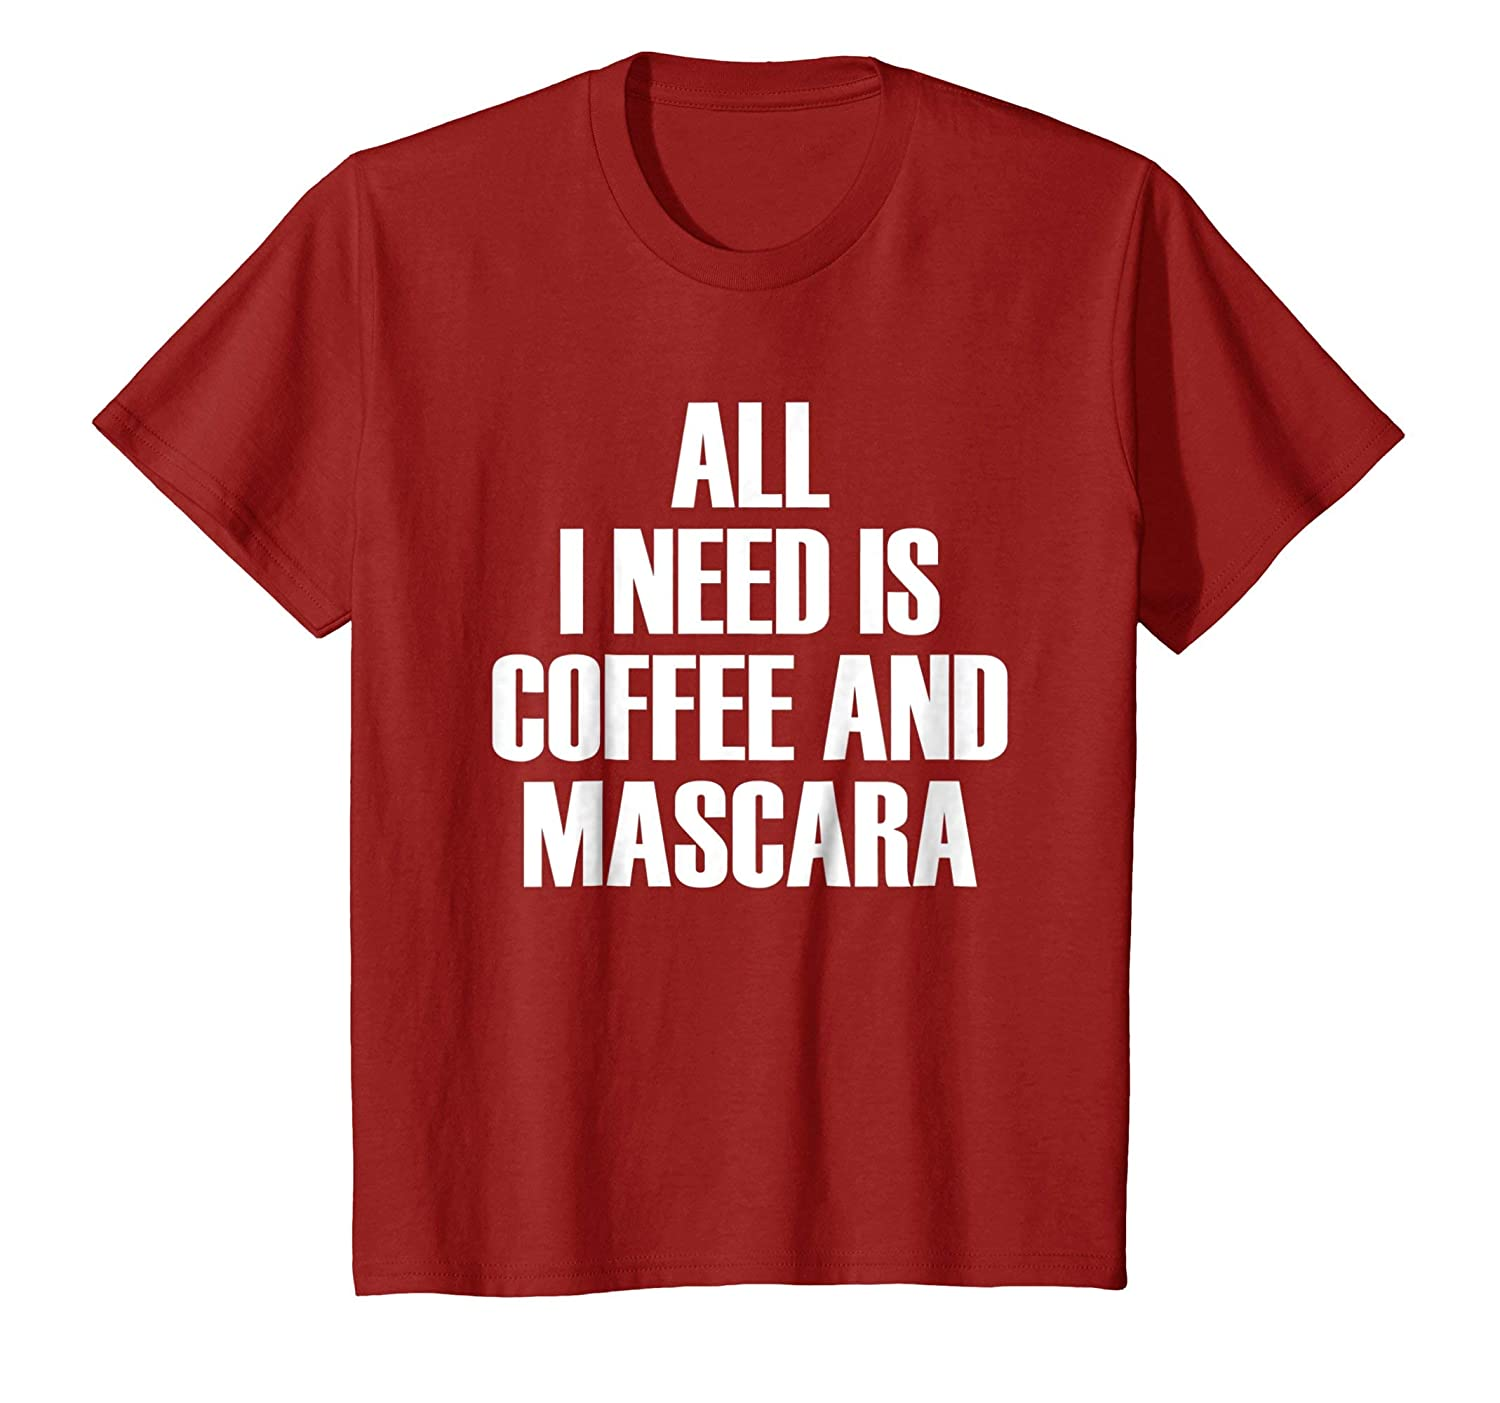 Amazon.com: All I Need Is Coffee And Mascara - Funny Quote T-Shirt: Clothing